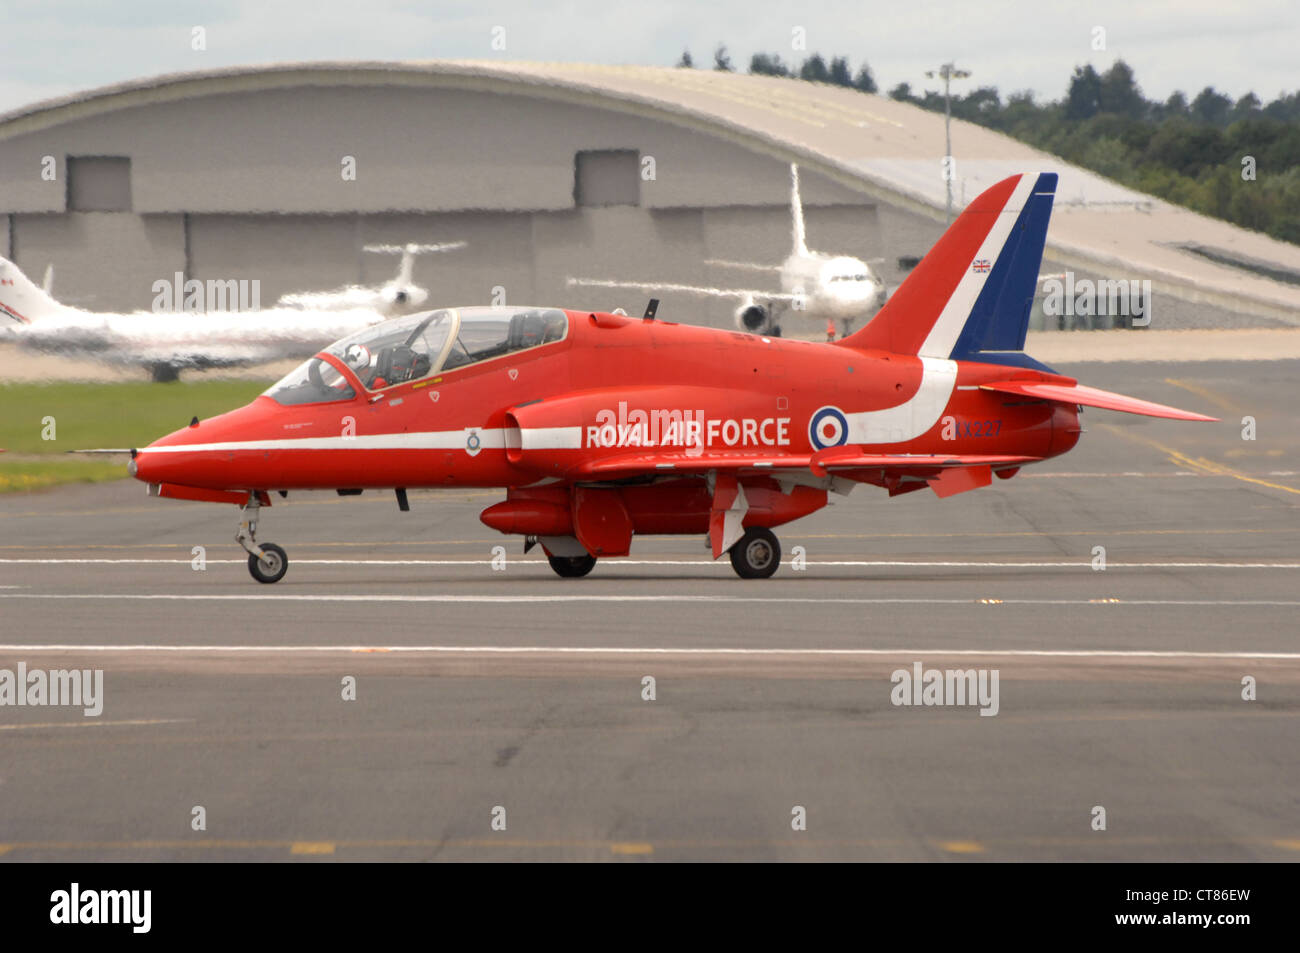 BAE Systems Hawk T1 of the RAF Red Arrows display team taxiing on the runway at Farnborough. England. - Stock Image